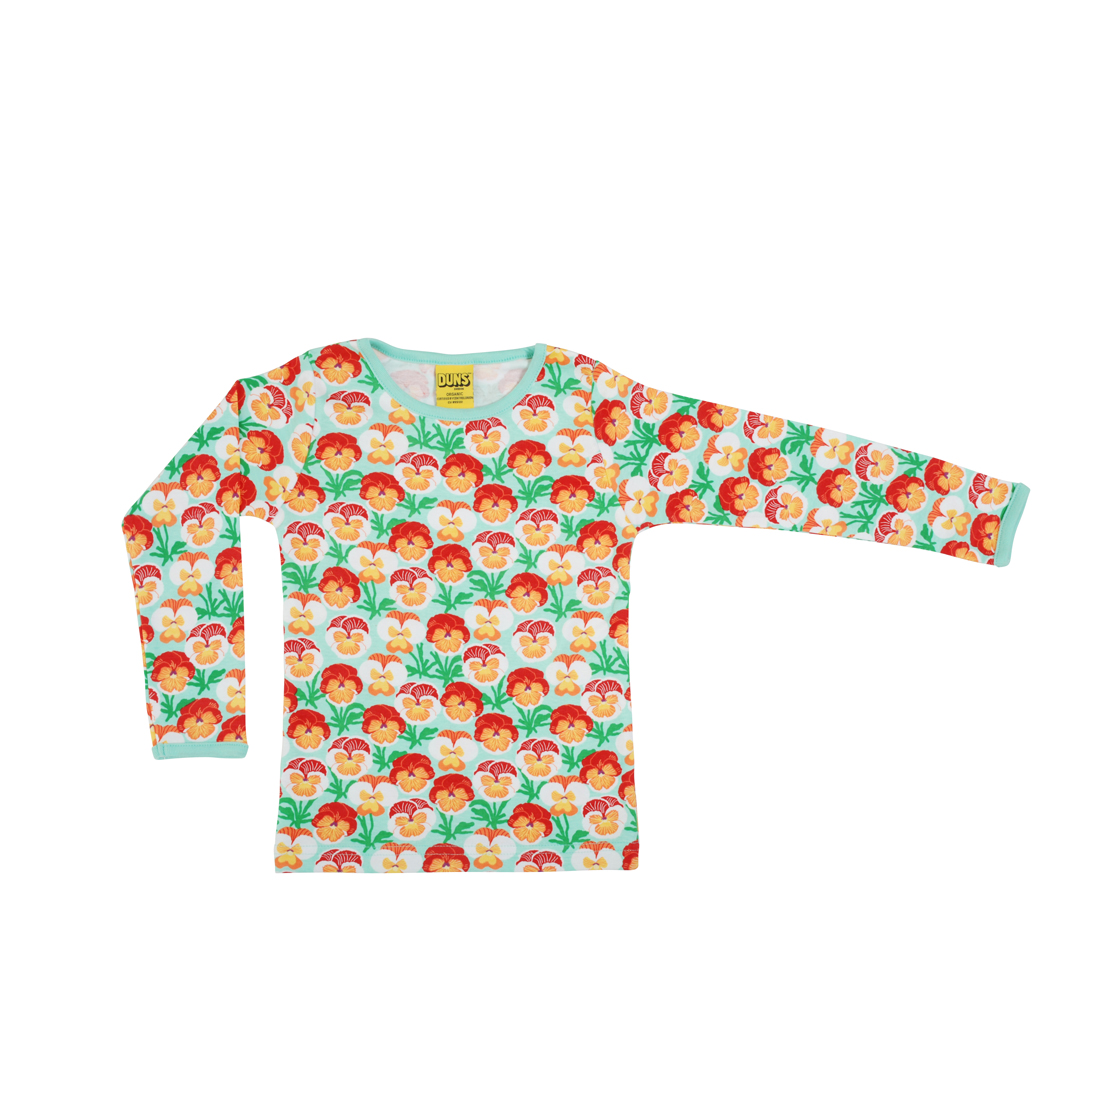 "DUNS Organic Cotton ""Pansy Beach Glass\"" Long Sleeve Top (12-18 Months)"